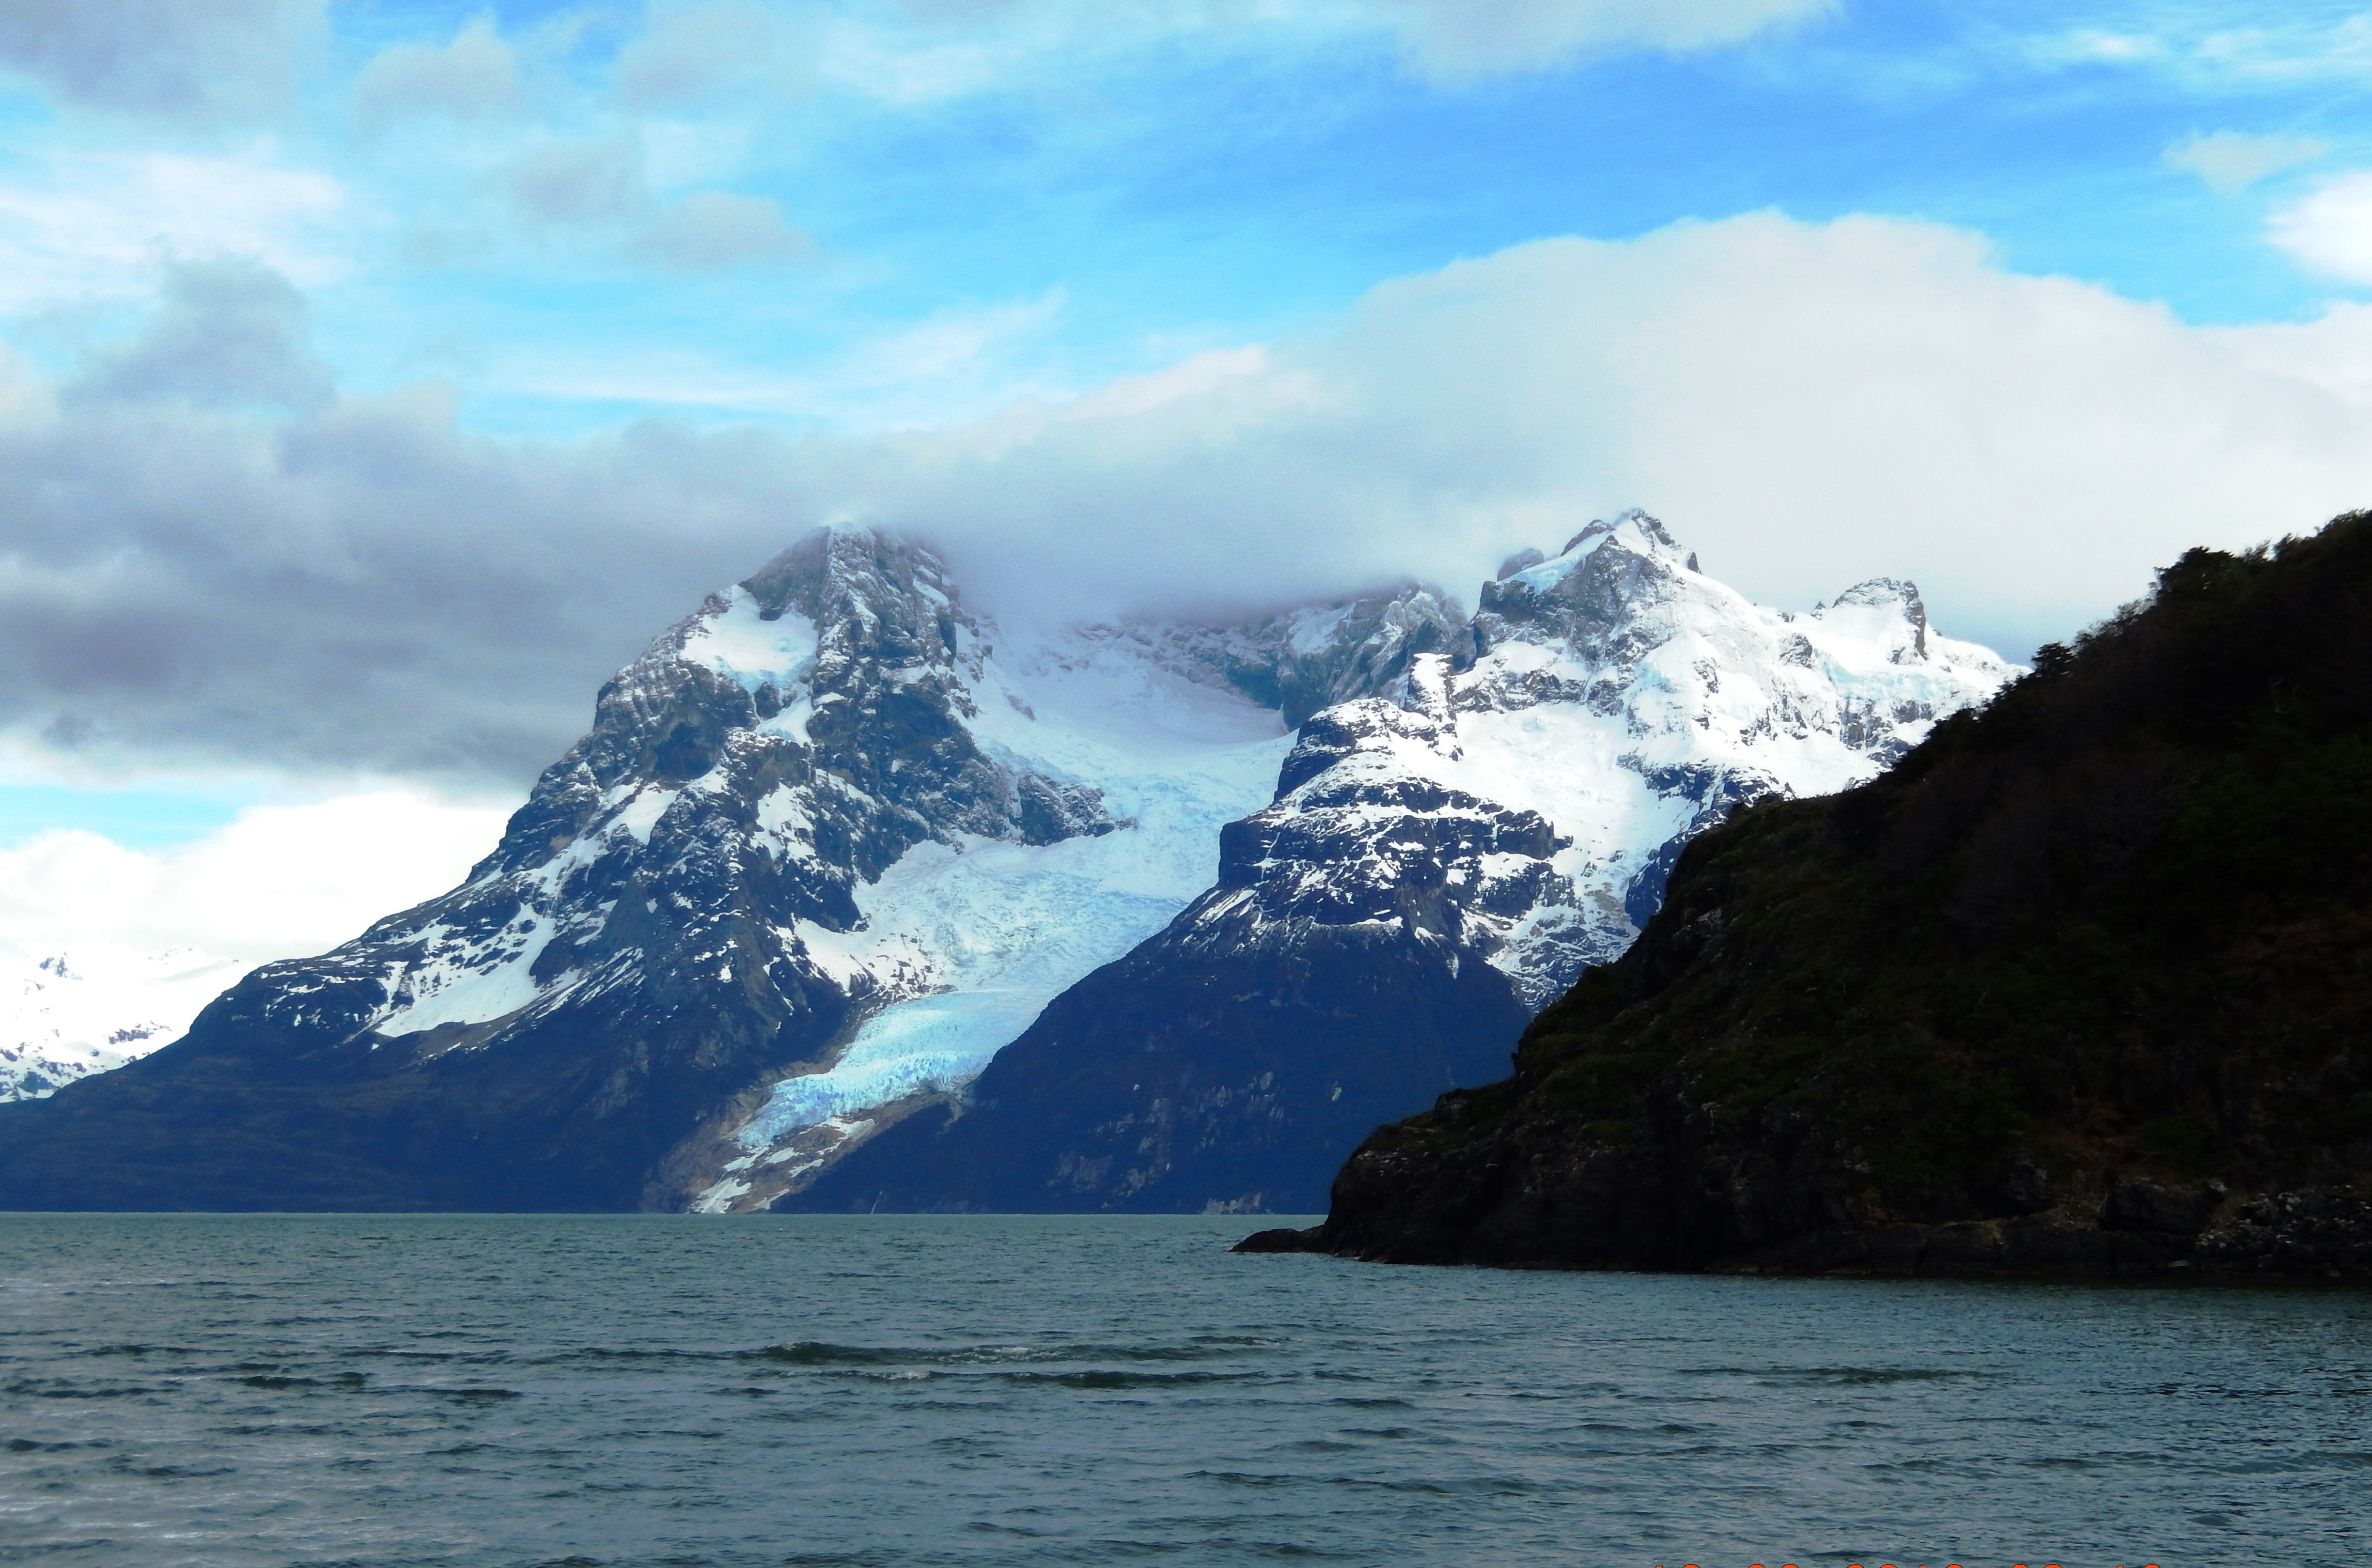 Lakes Mountains Glaciers Patagonia Chile Www Islanddreamstvl